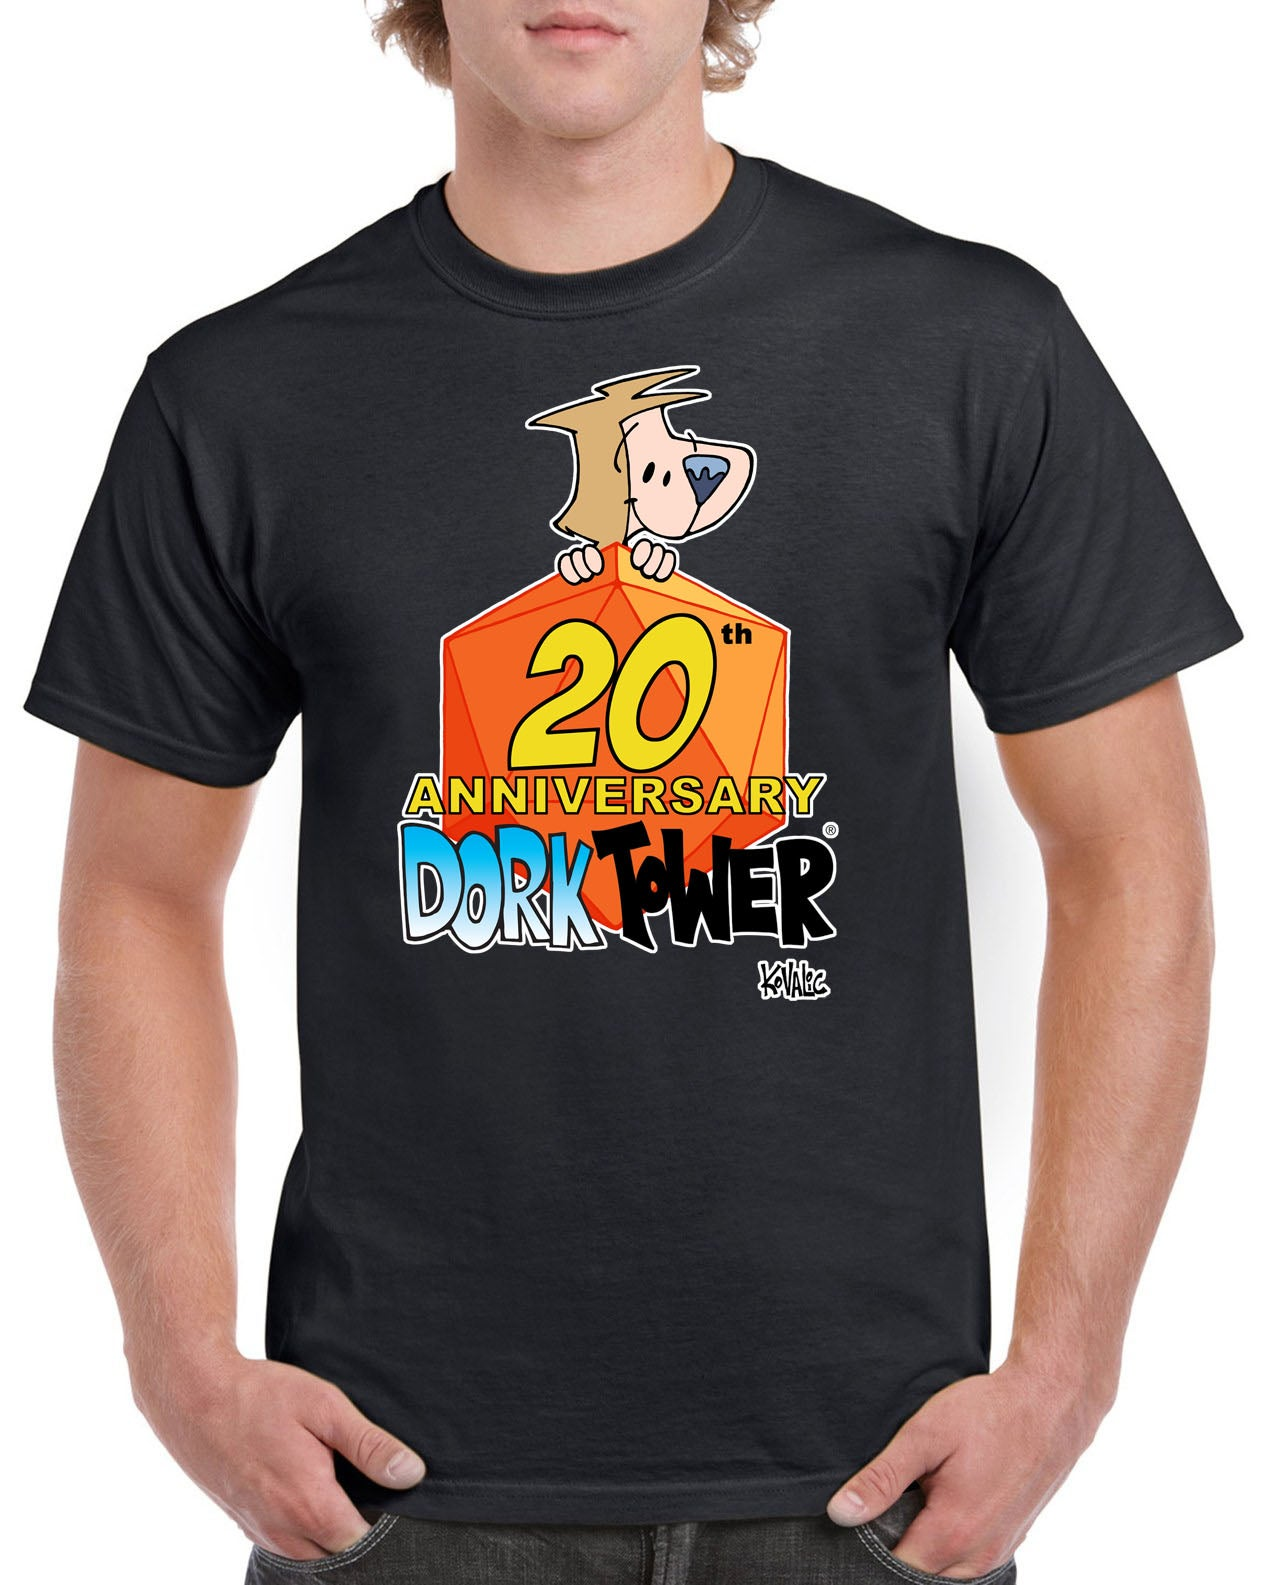 Image of Dork Tower 20th Anniversary Shirt